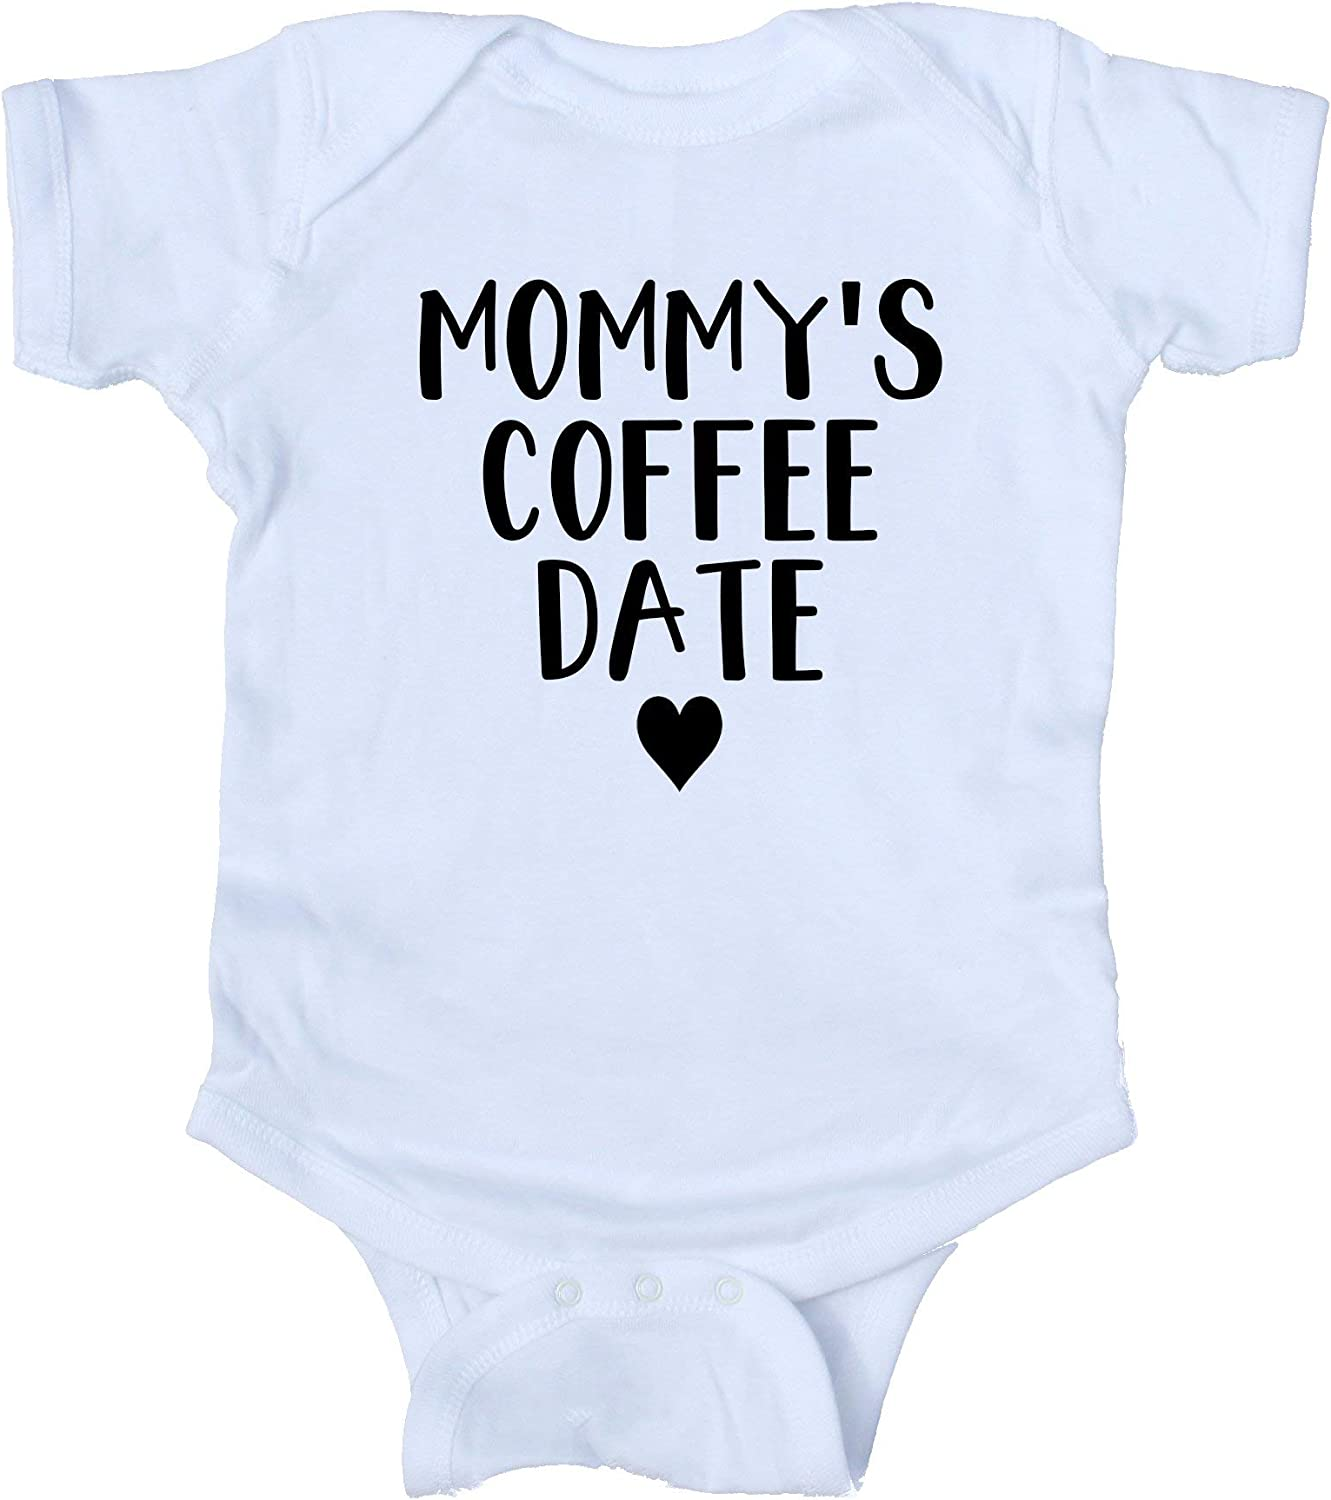 Mommys Coffee Date Baby Onesie Boy Girl Clothing